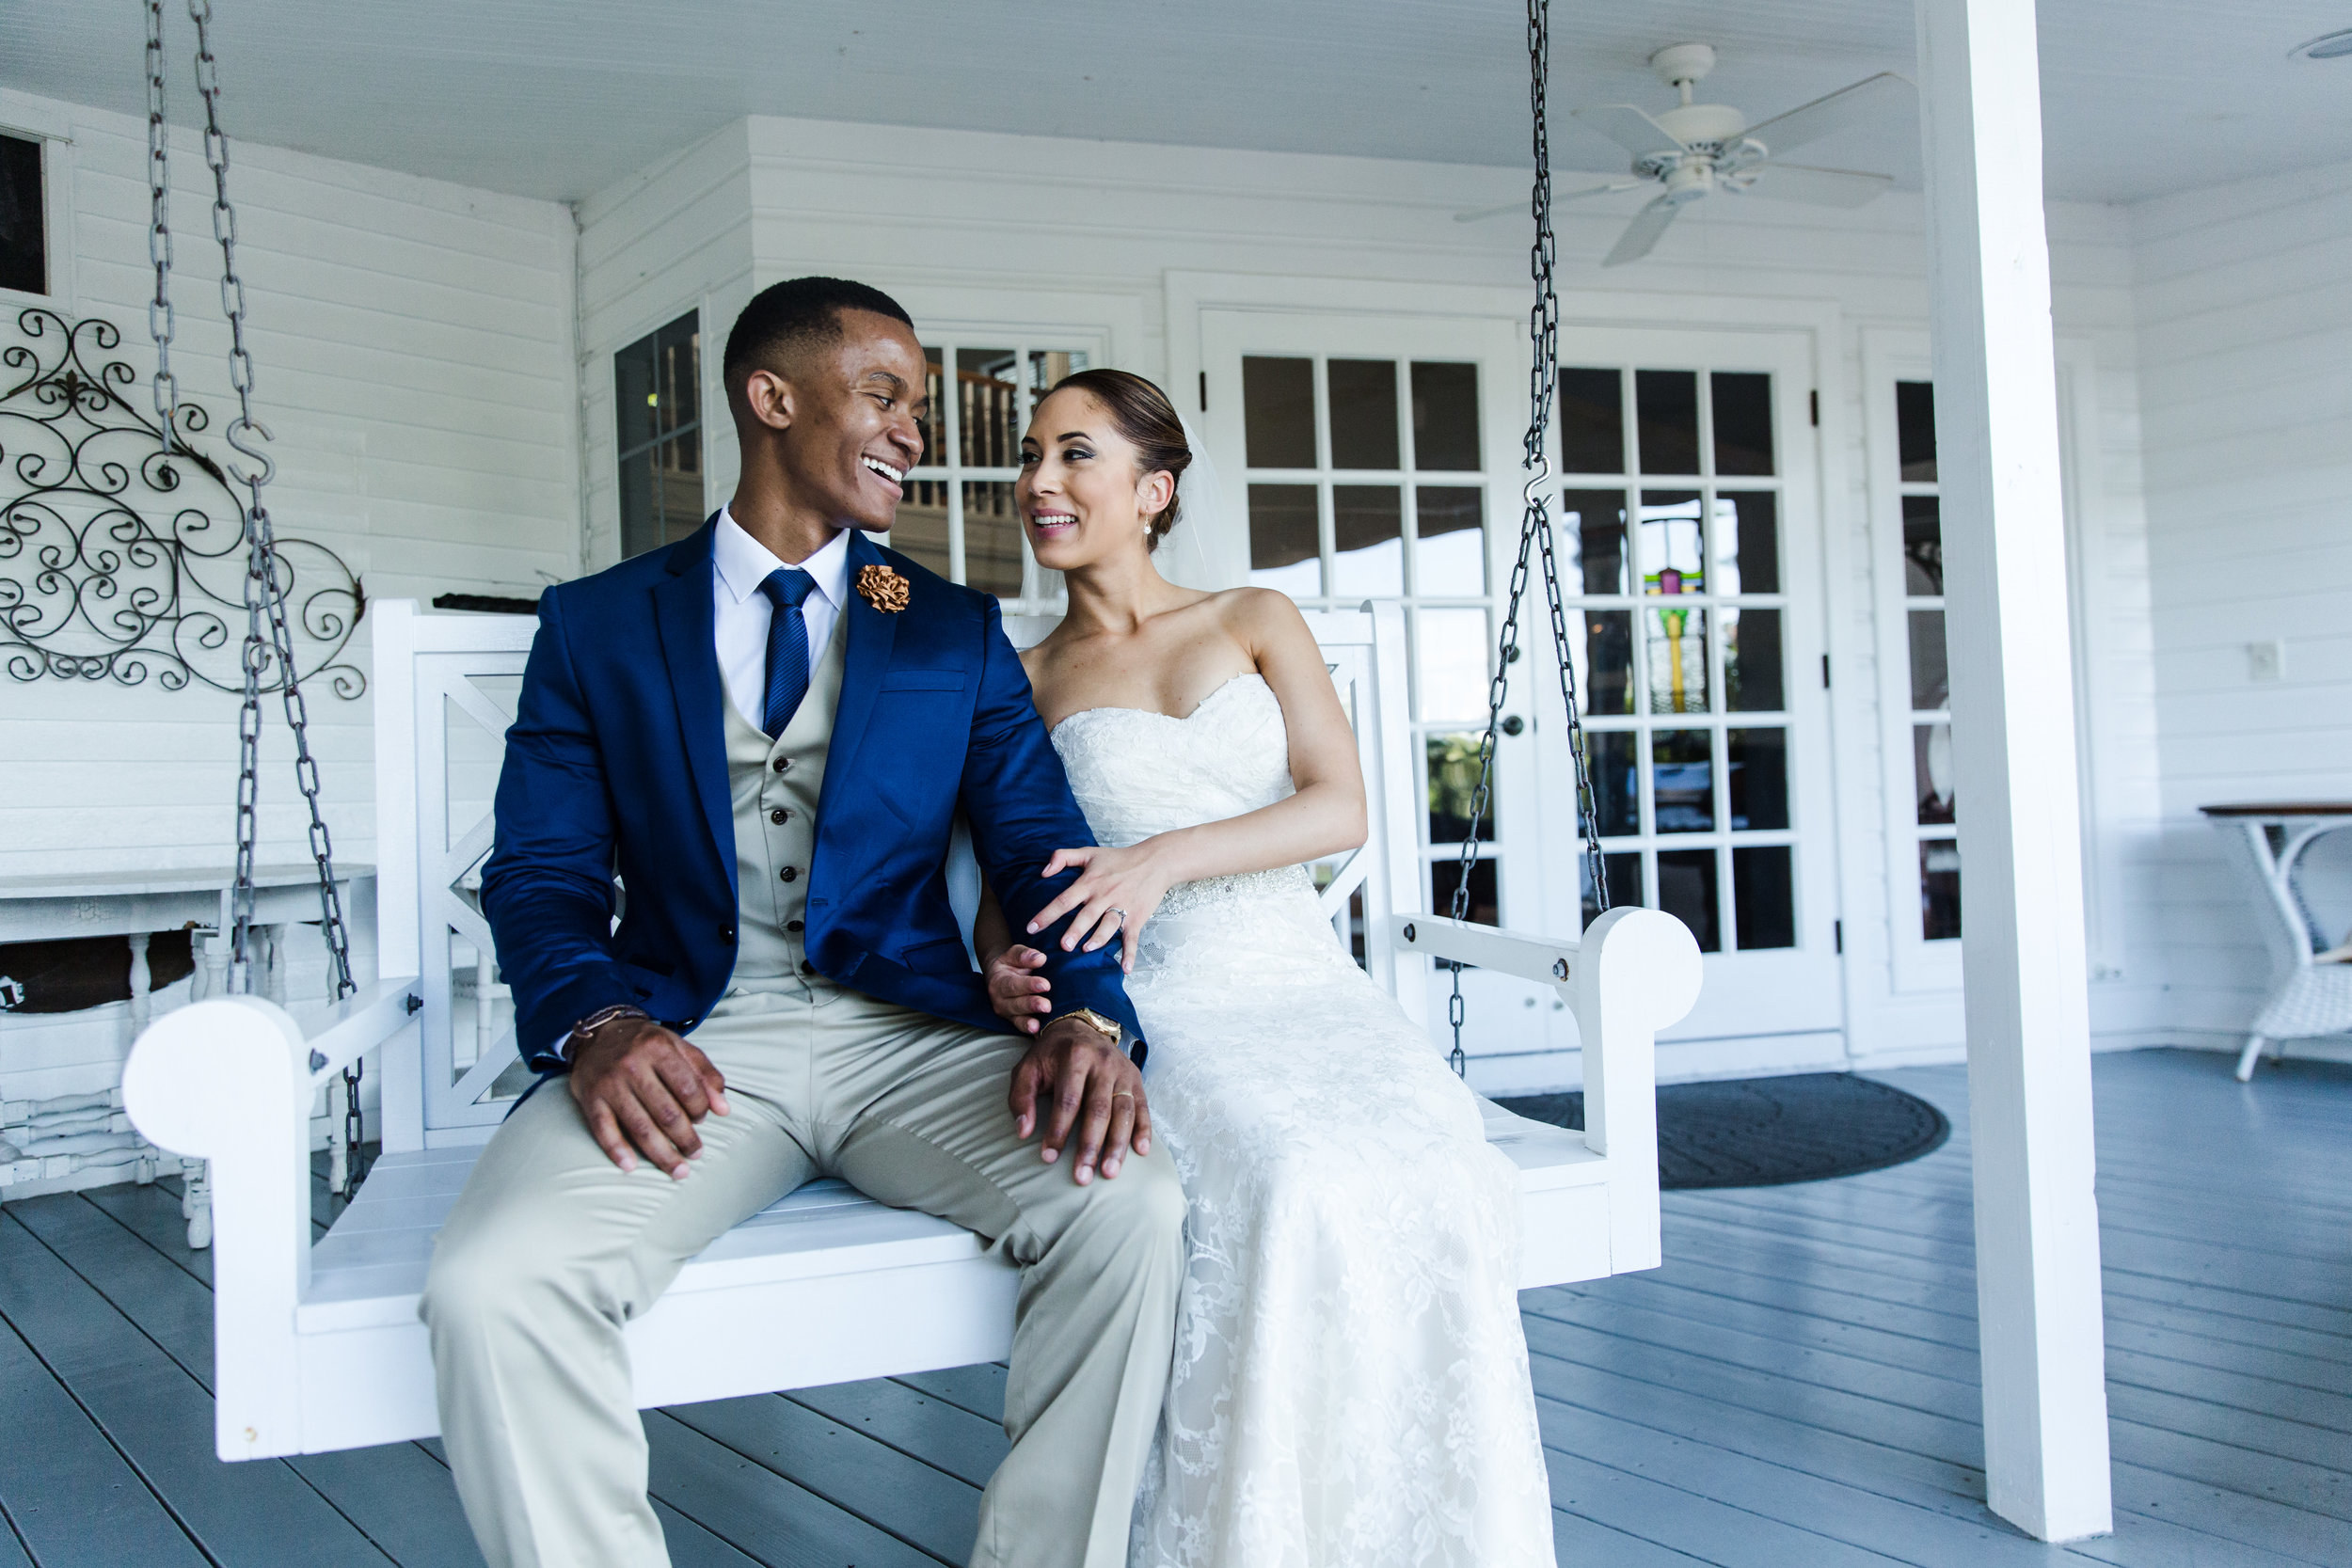 A wedding, engagement, love, newlywed image of a bride in her wedding dress at an Estate-taken by Miami Wedding Photographer, Javier Edwards of El Roi Photo, in Miami, Florida, for a Miami Wedding